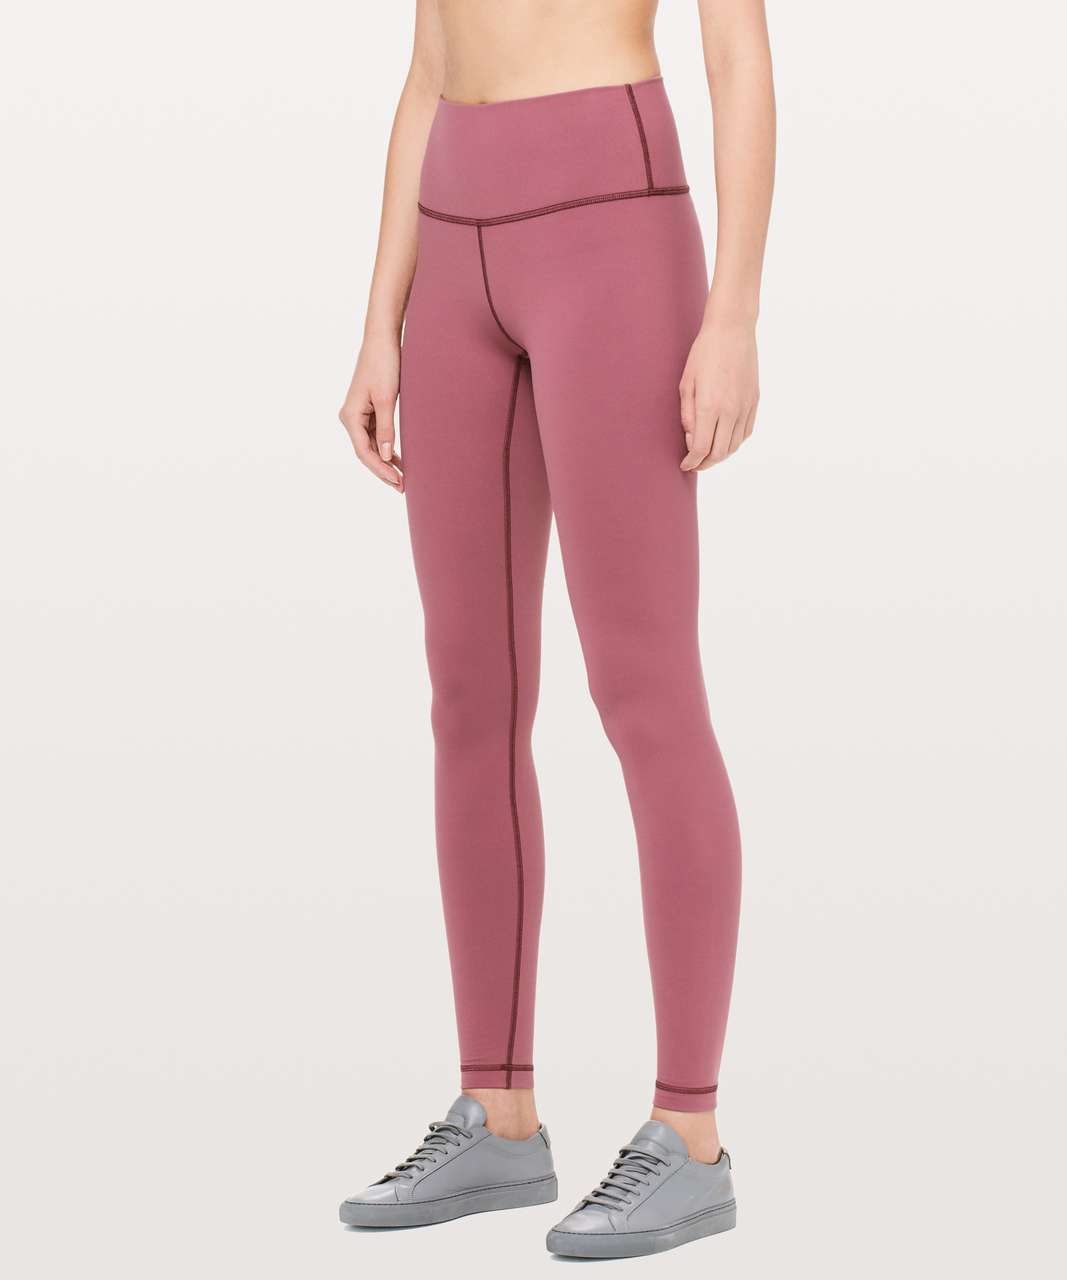 "Lululemon Wunder Under Hi-Rise Tight *Tall 31"" - Misty Merlot"